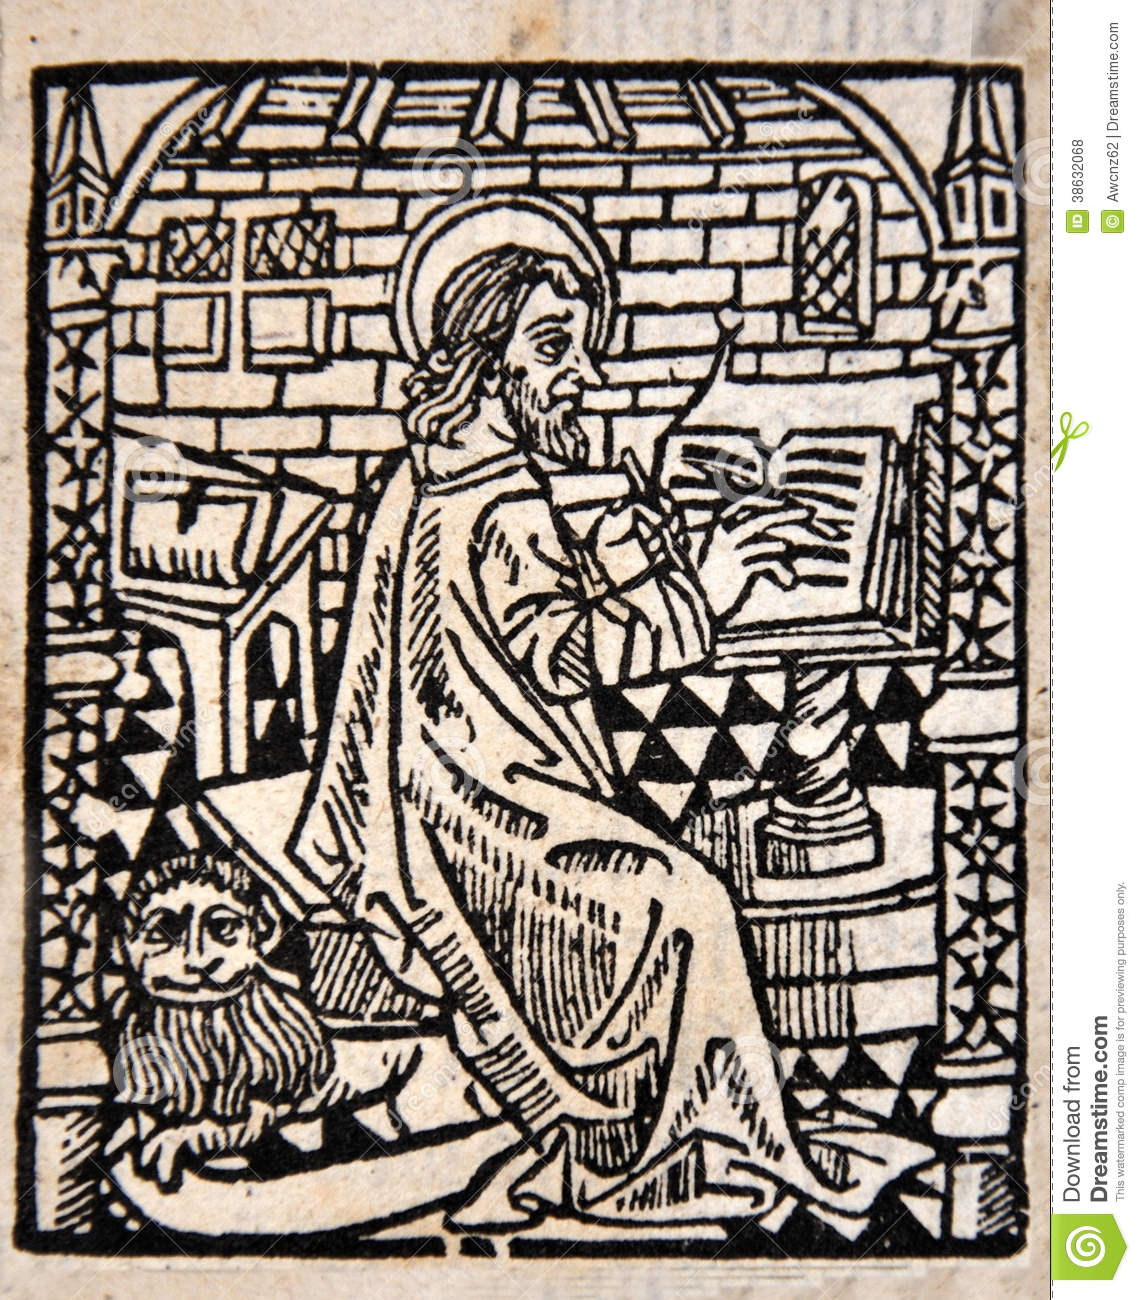 william tyndale a legacy essay William tyndale was known as 'the father of the english bible' and the true hero of william was not only fluent in the biblical william tyndale's legacy.